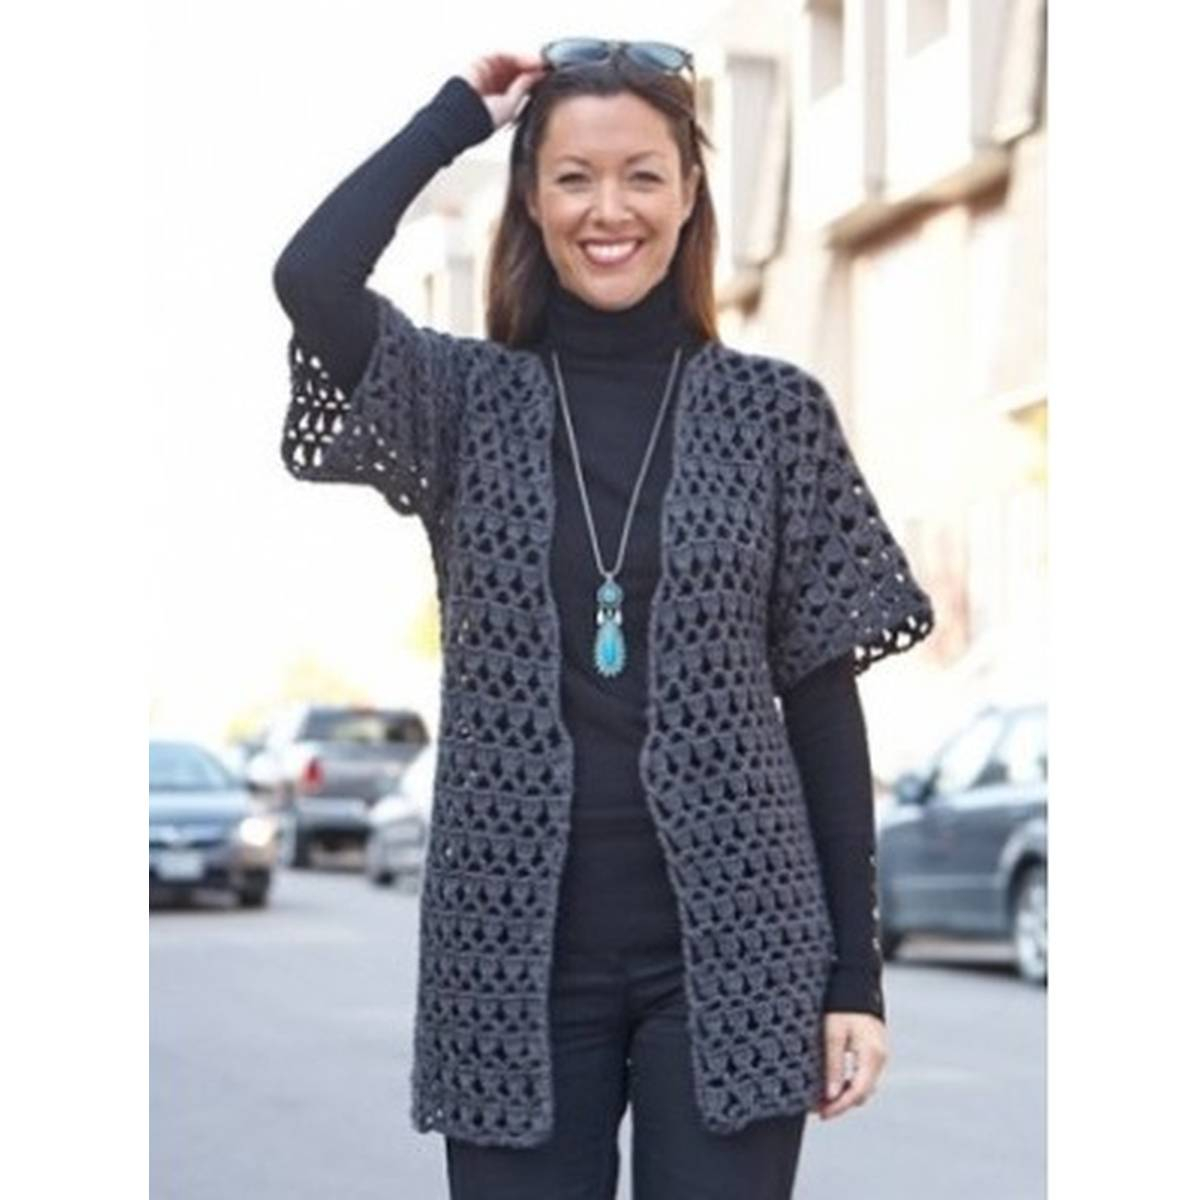 Free Crochet Jacket Pattern Designs for All Seasons Free Pattern Caron Office Crochet Jacket Hobcraft